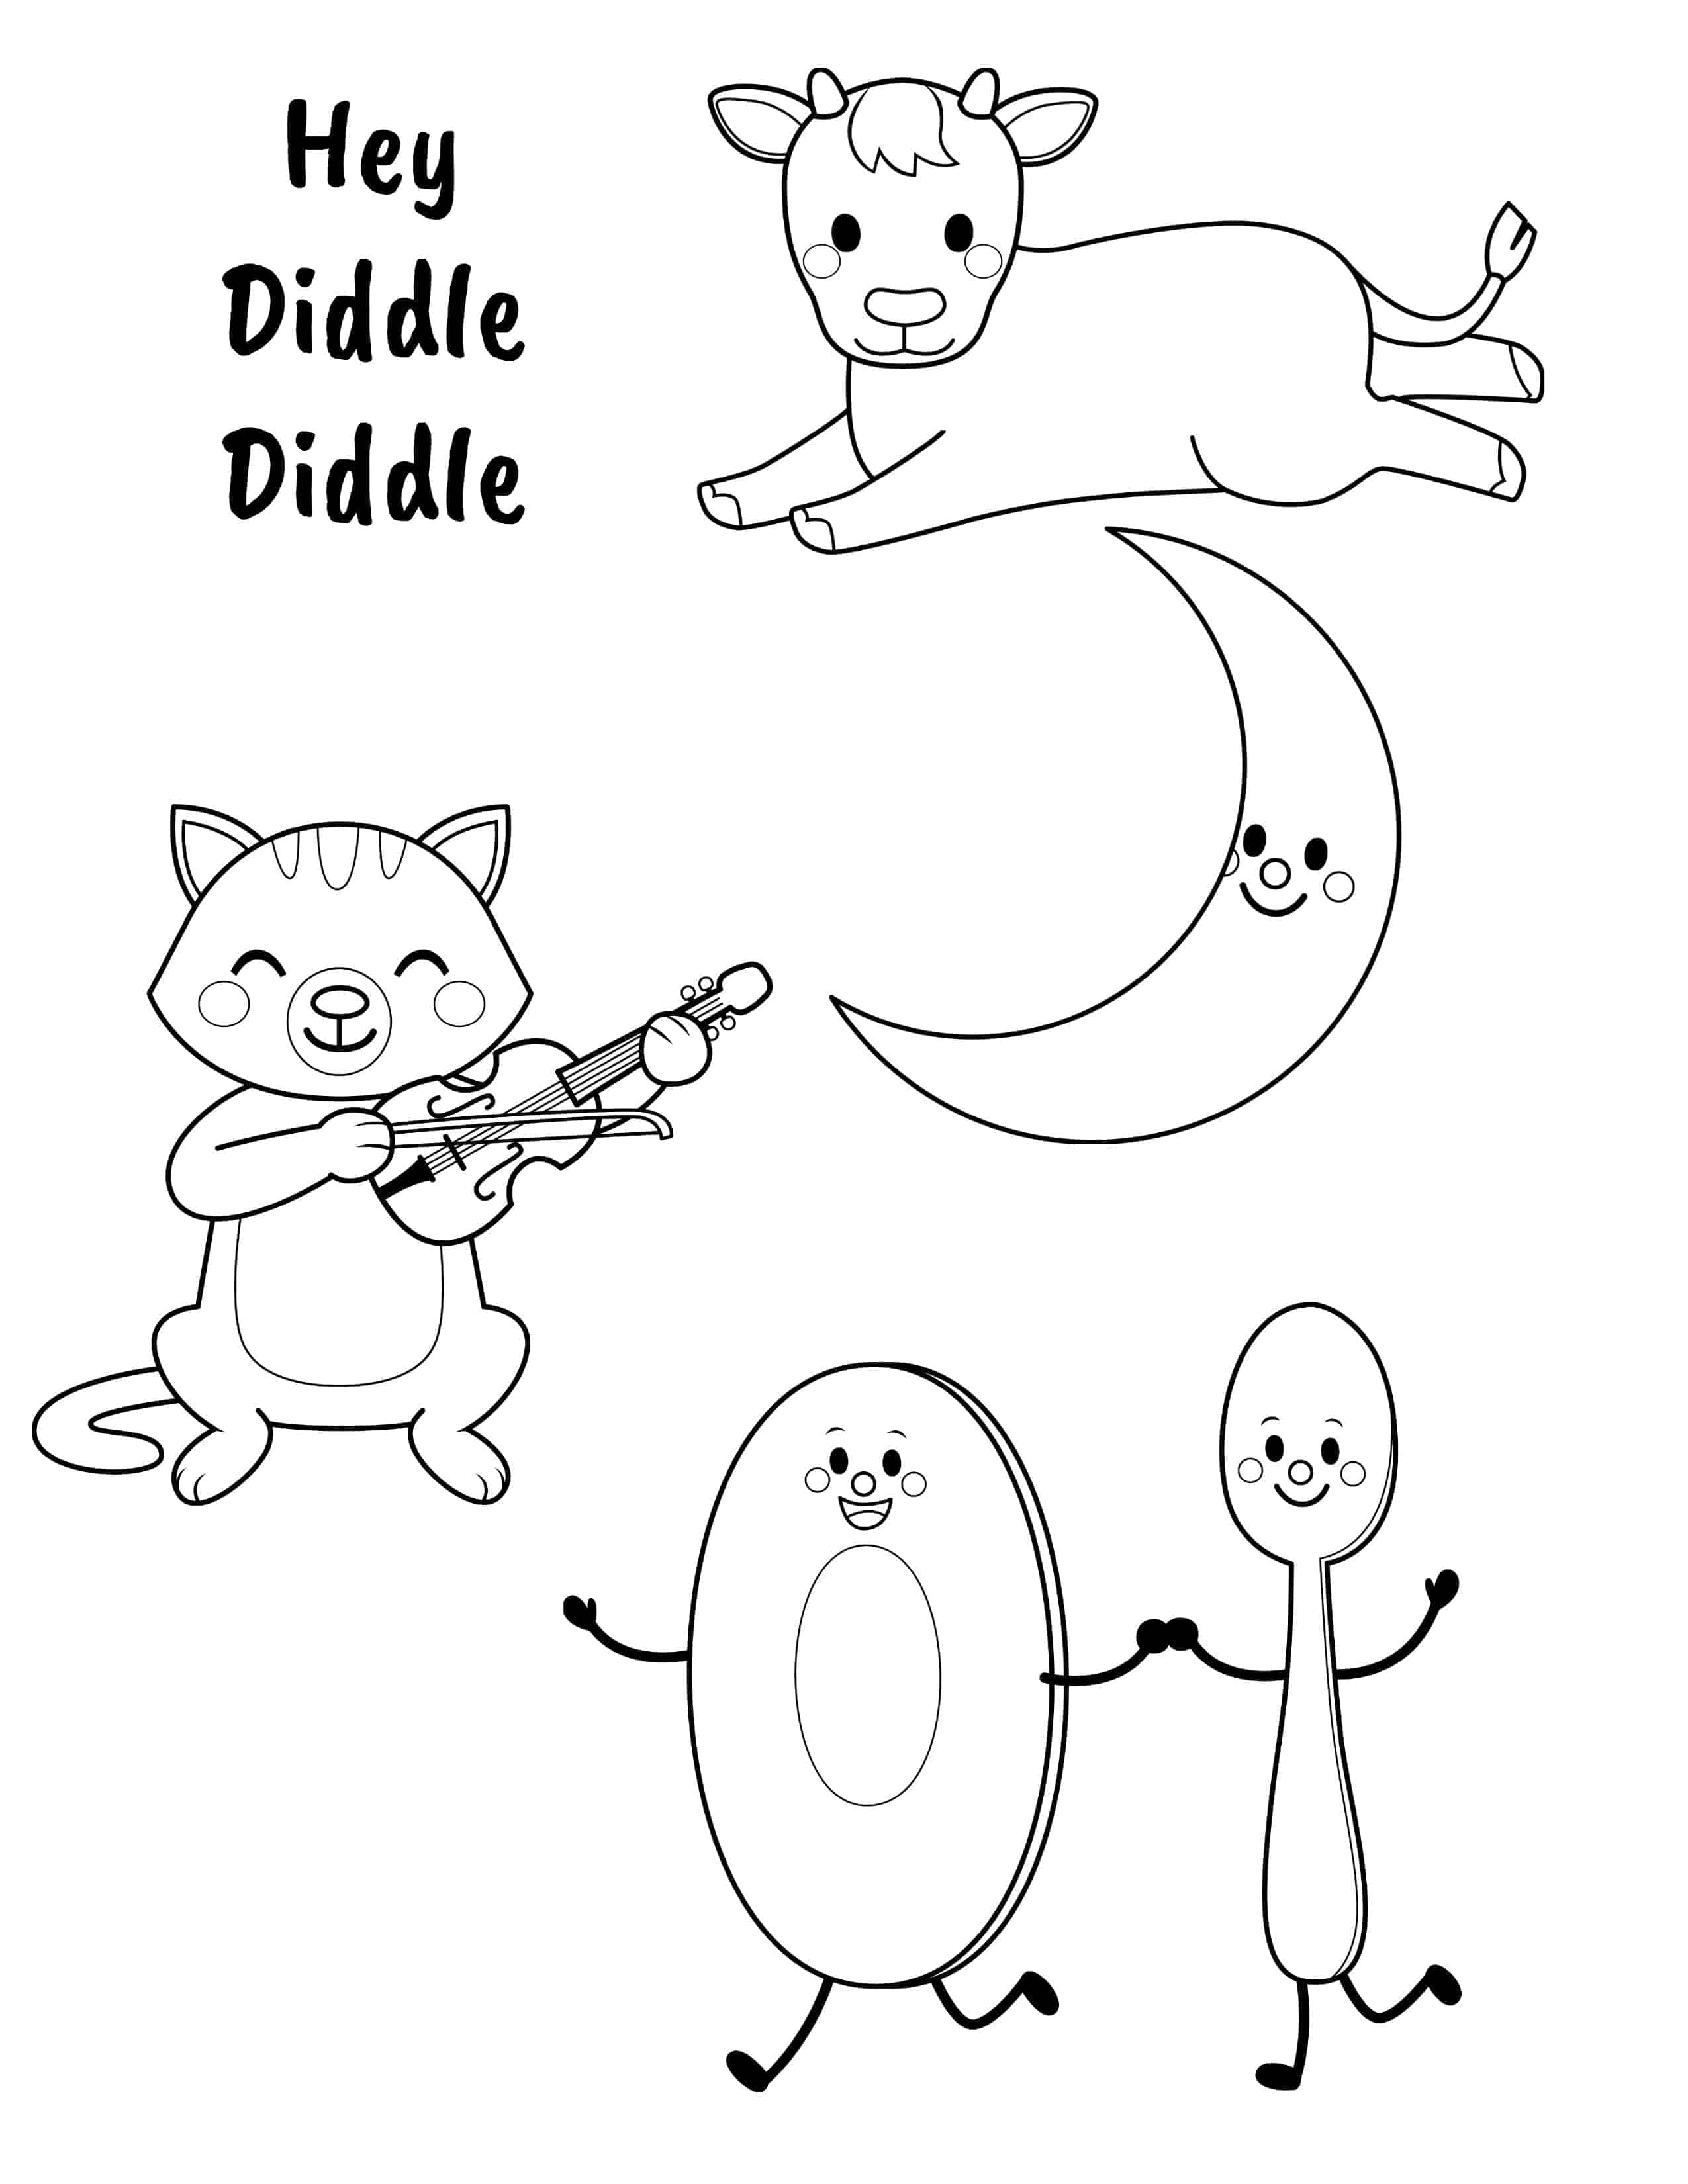 hey diddle diddle coloring page nursery rhymes hey diddle diddle crayolacom hey page coloring diddle diddle